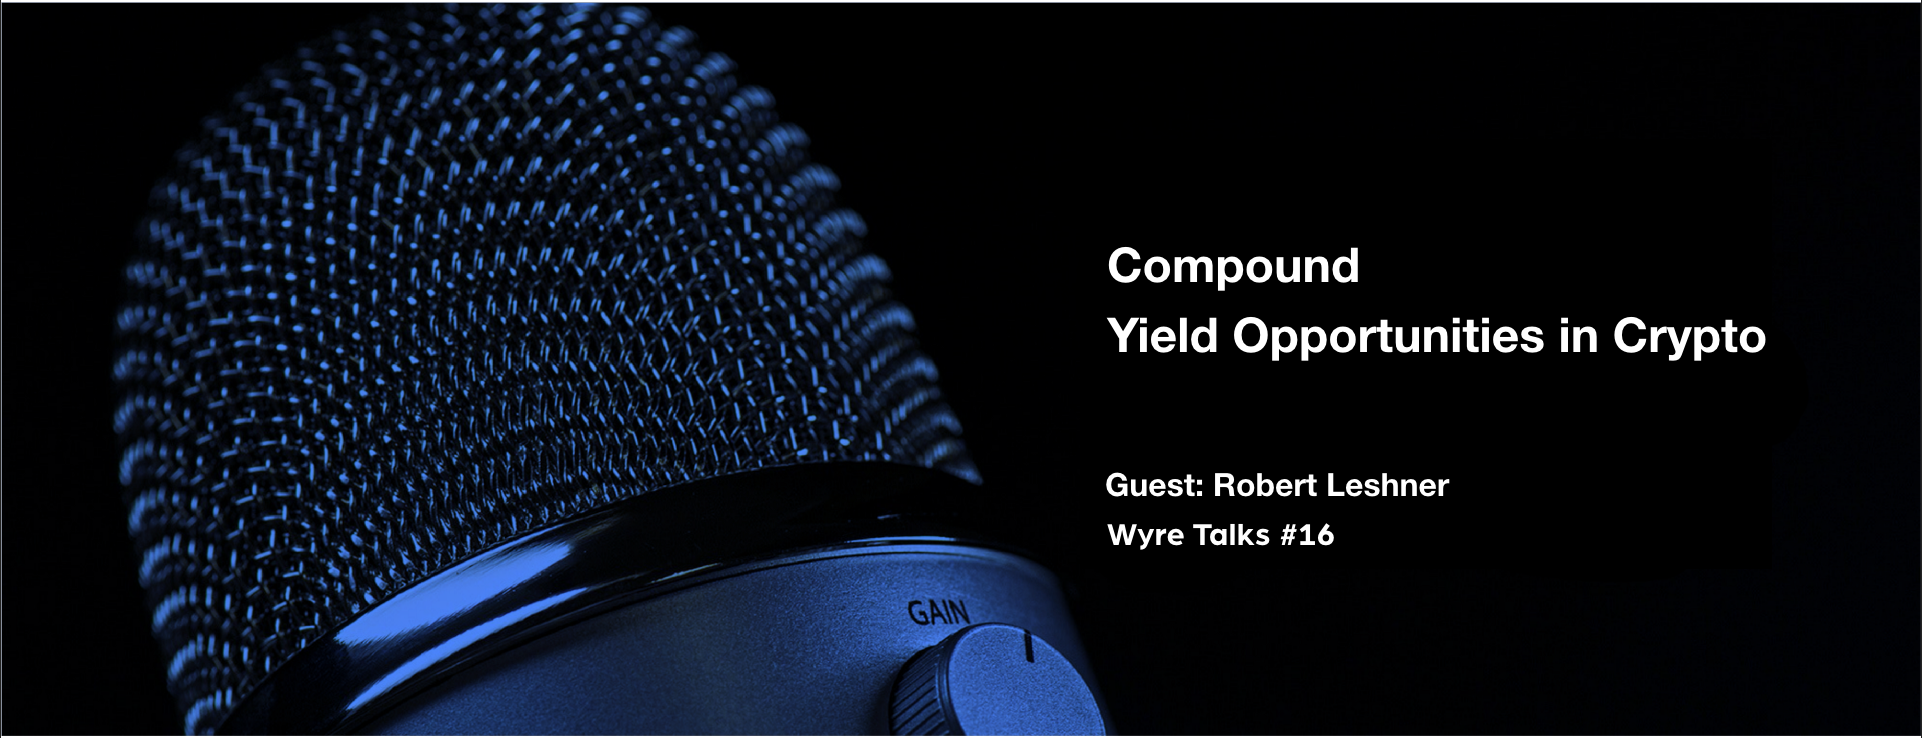 Wyre talks #16] Compound — Yield Opportunities in Crypto with Robert